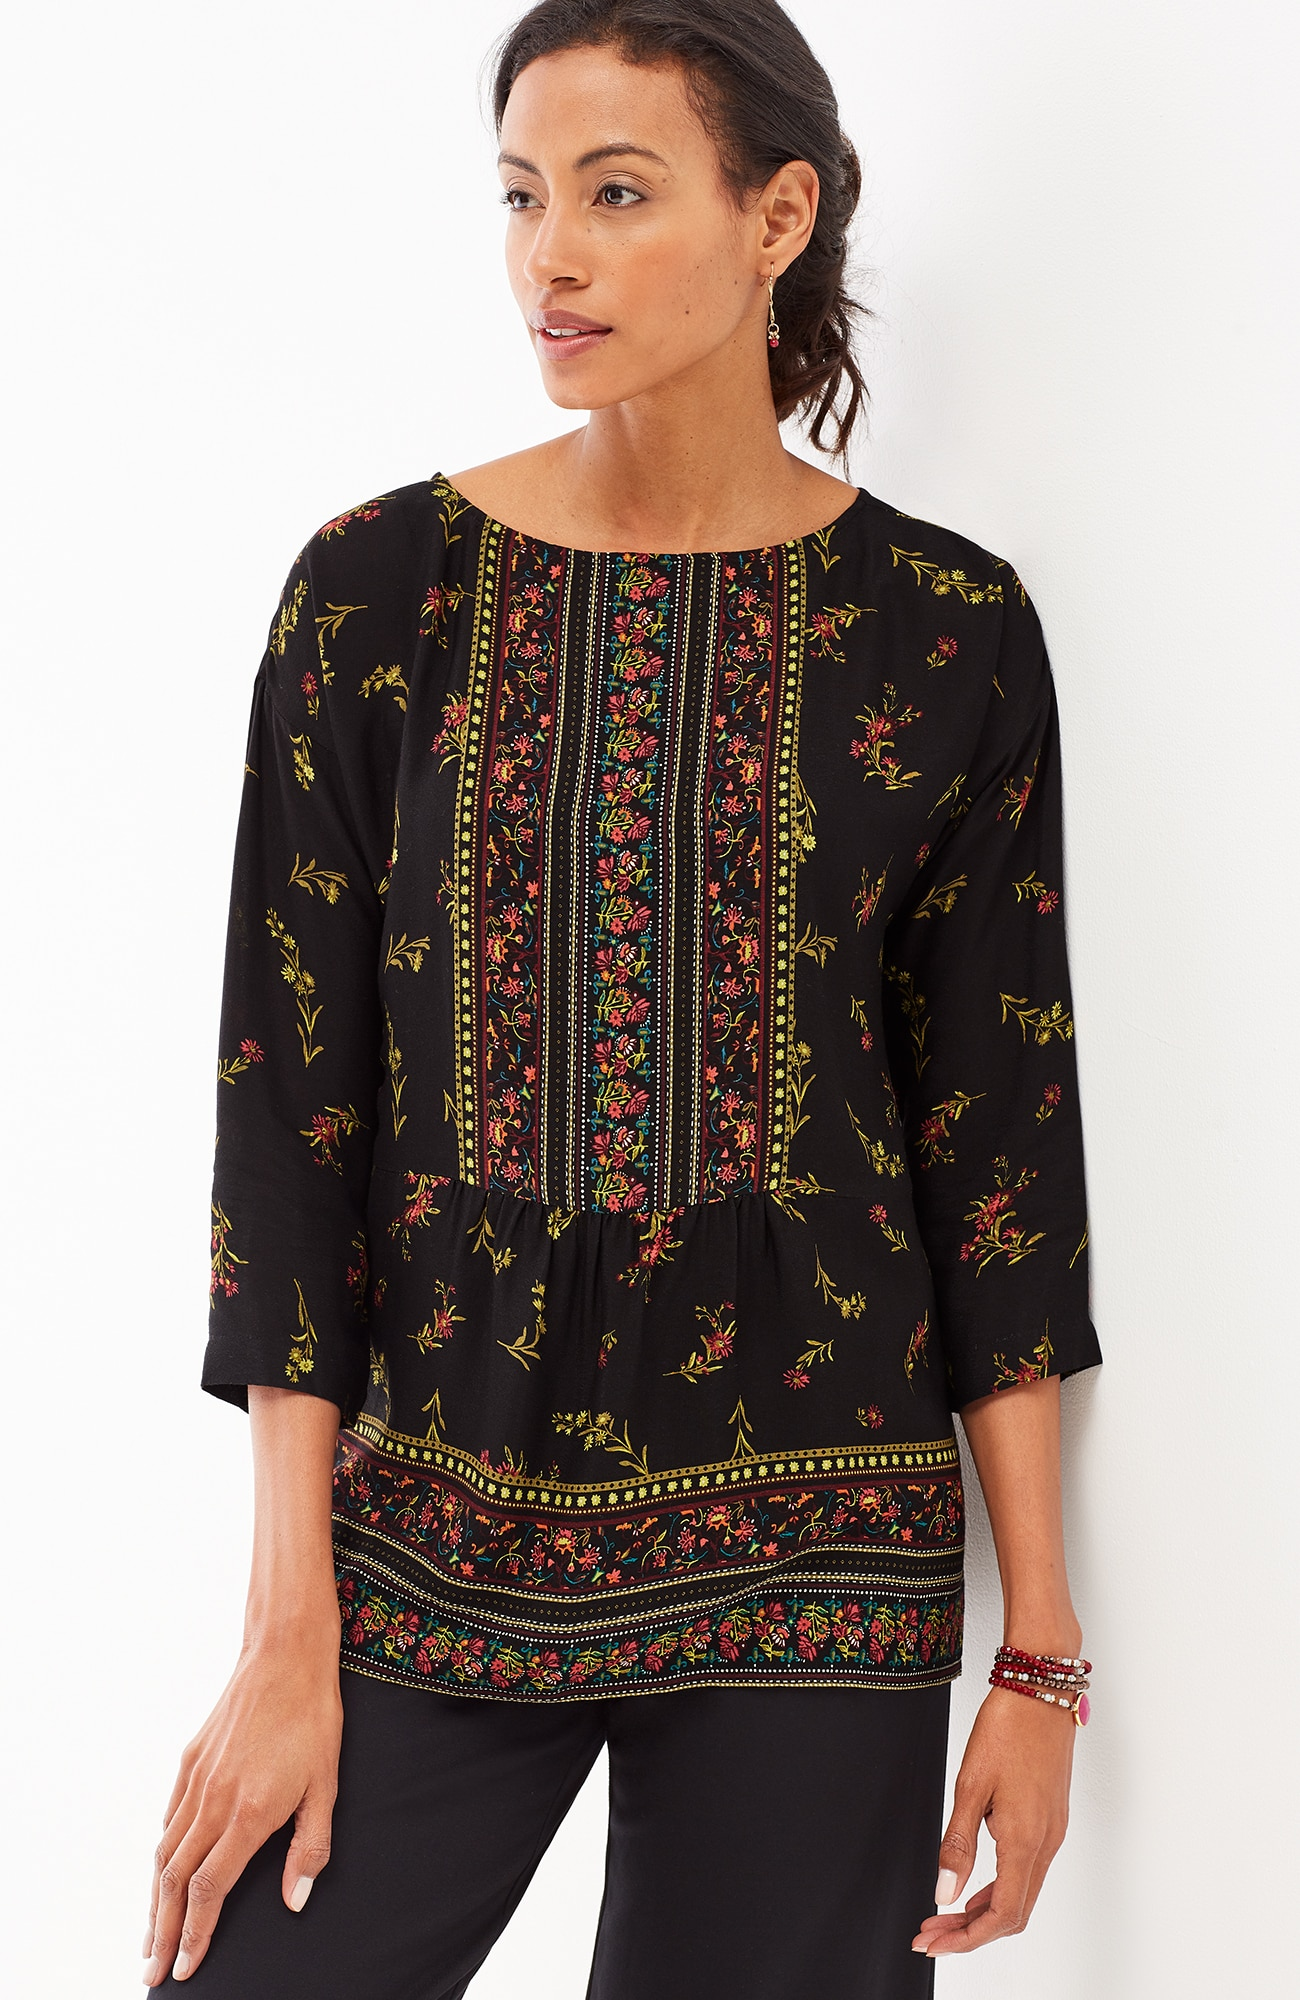 border-print boat-neck top